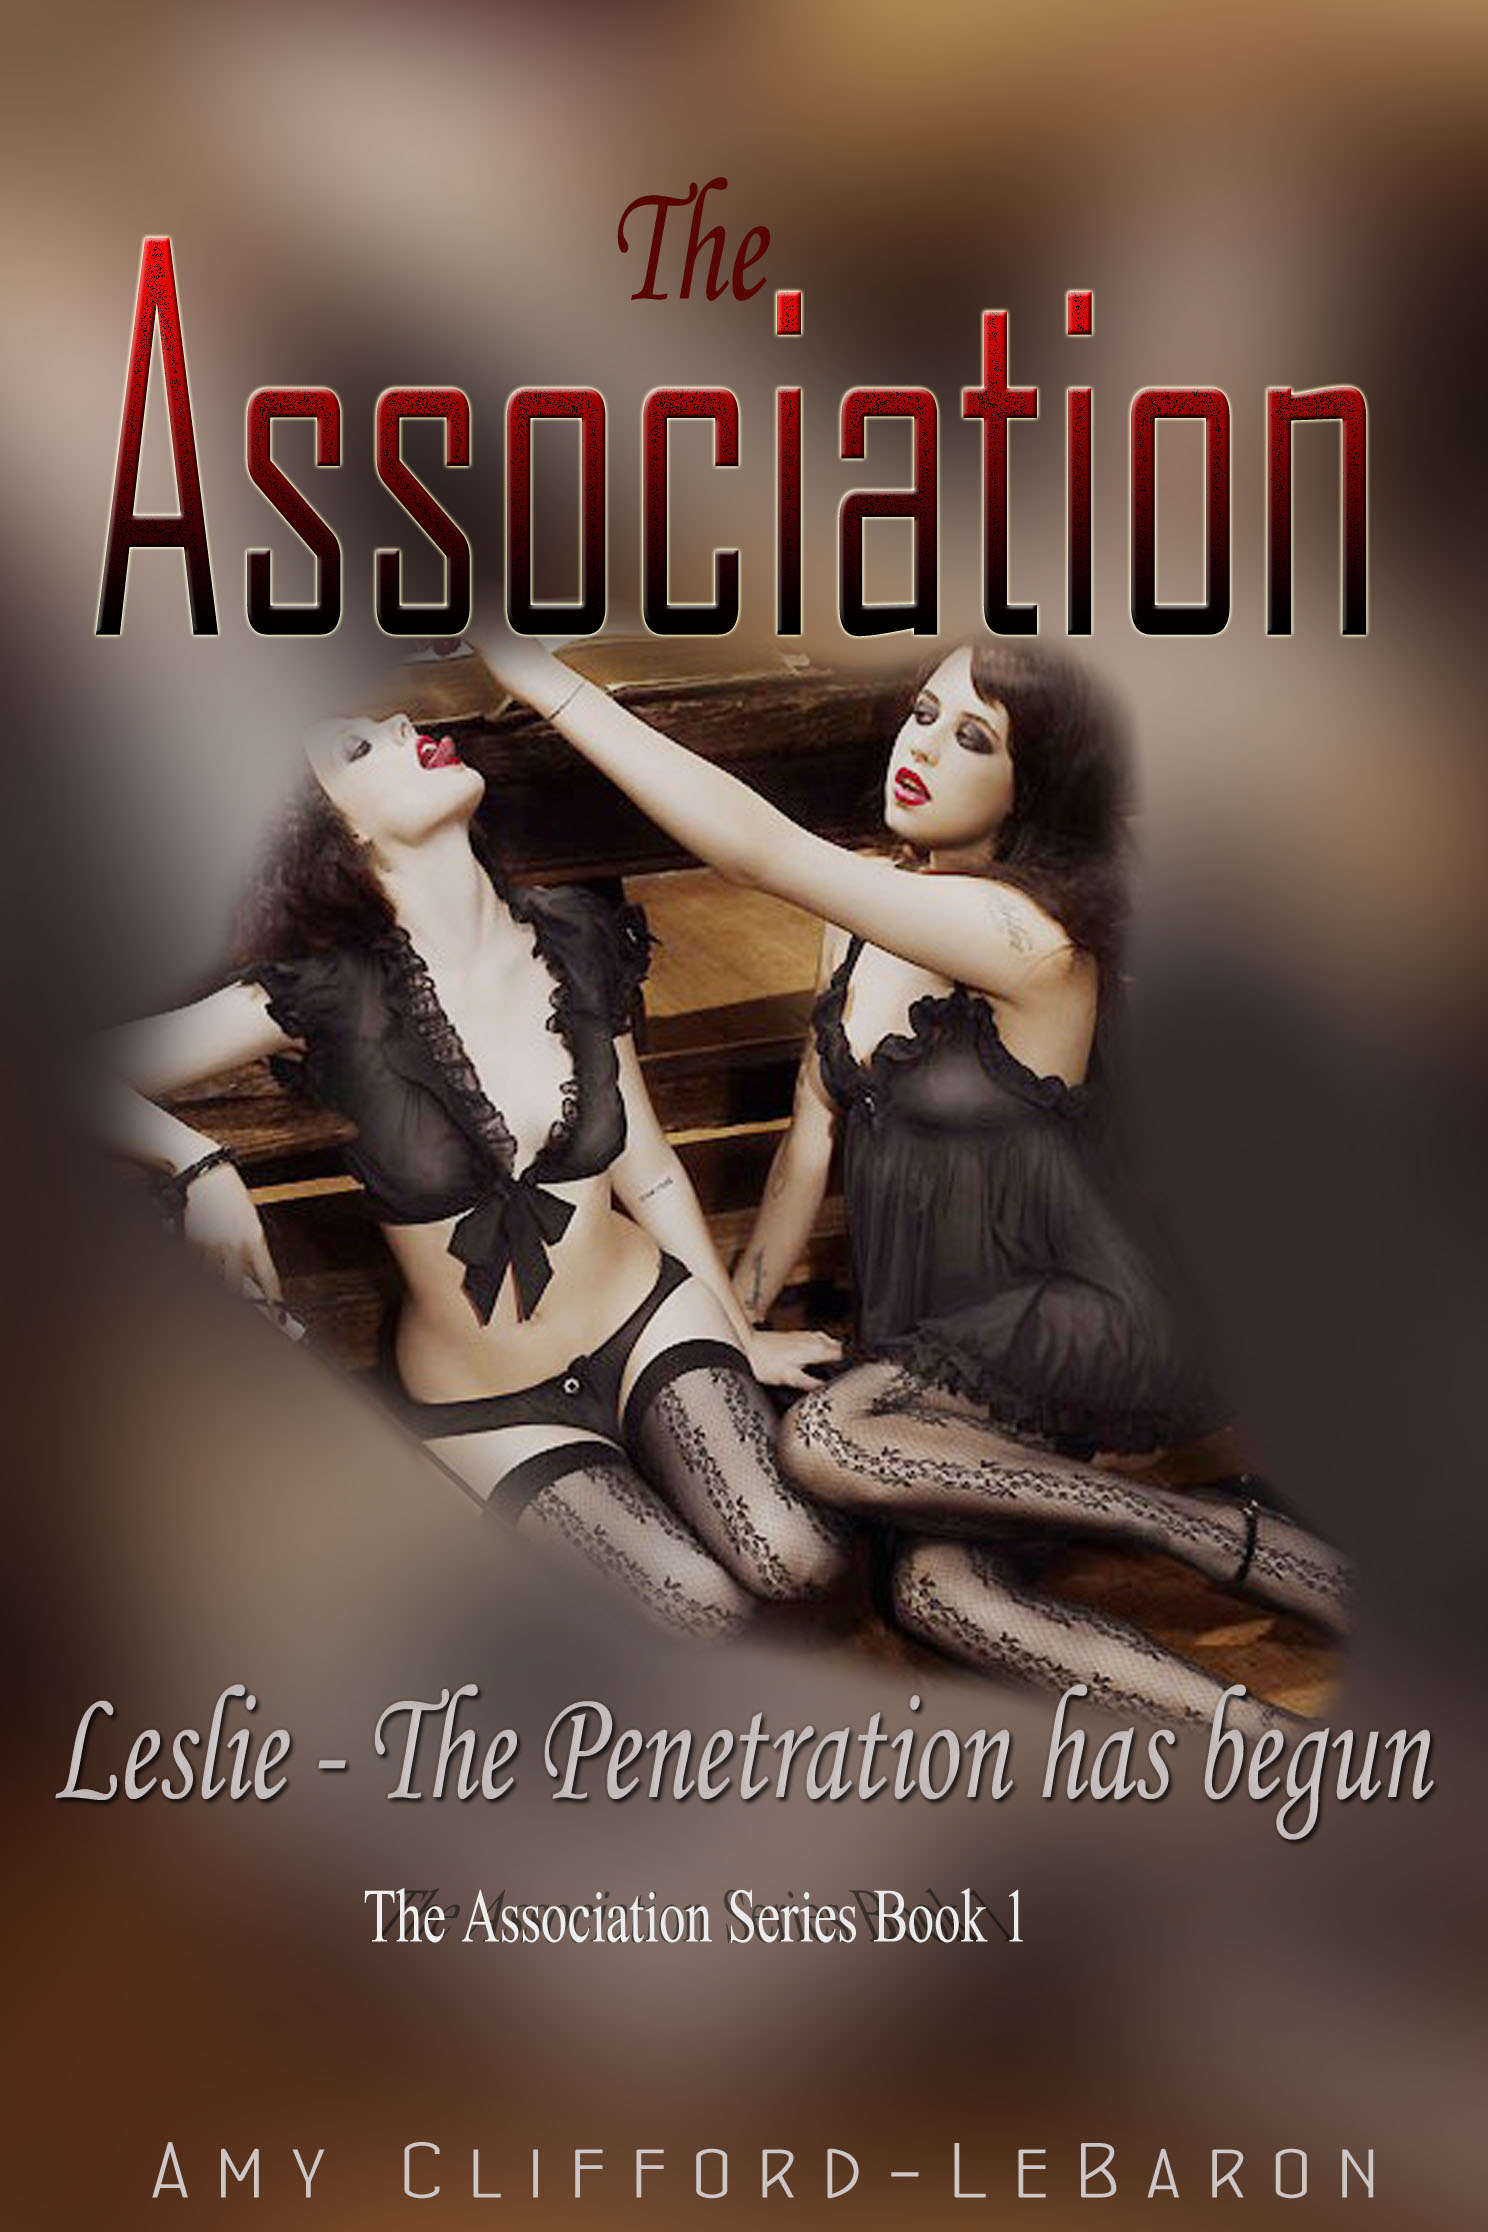 THE ASSOCIATION Book 1